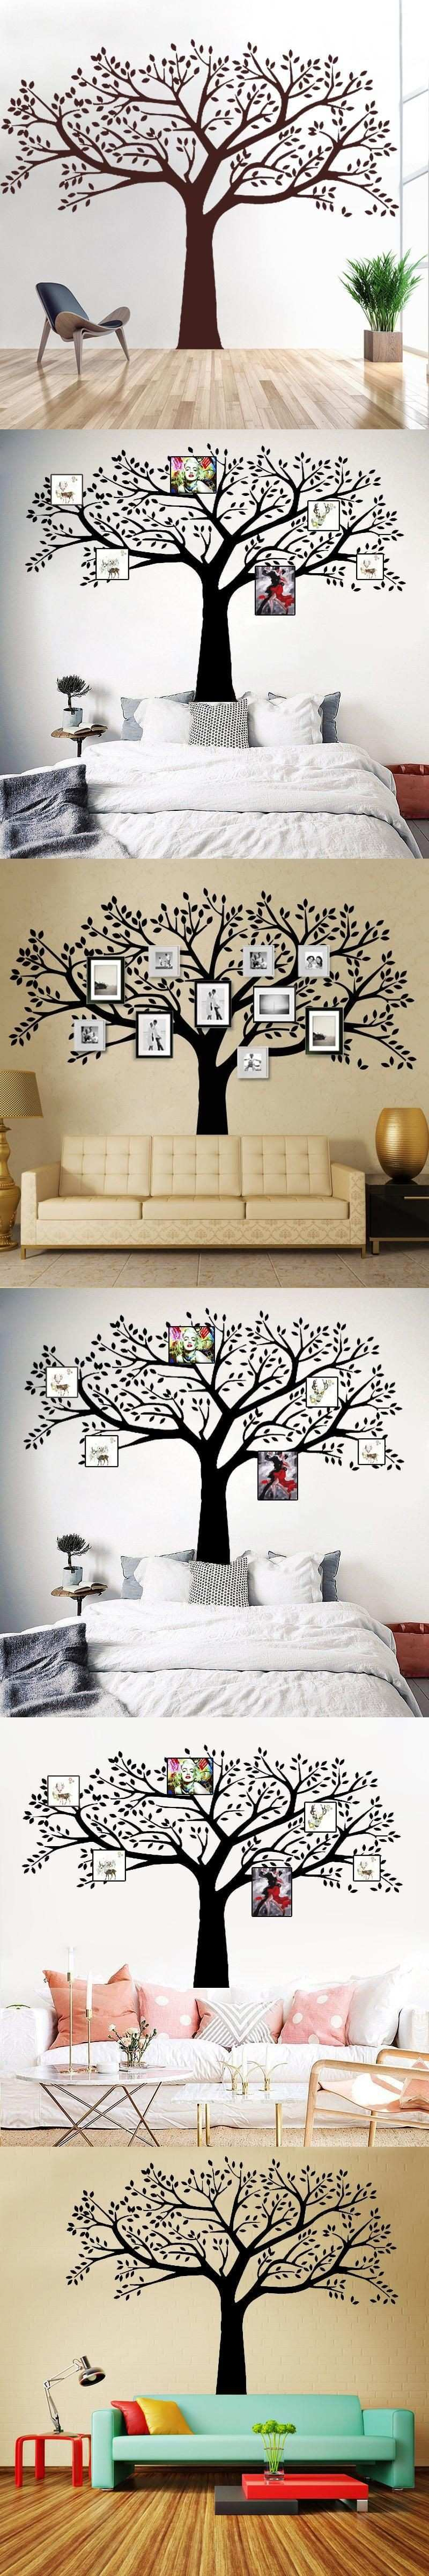 B16 Family Tree Wall Decals Vinyl Wall Decal Frame Tree Design